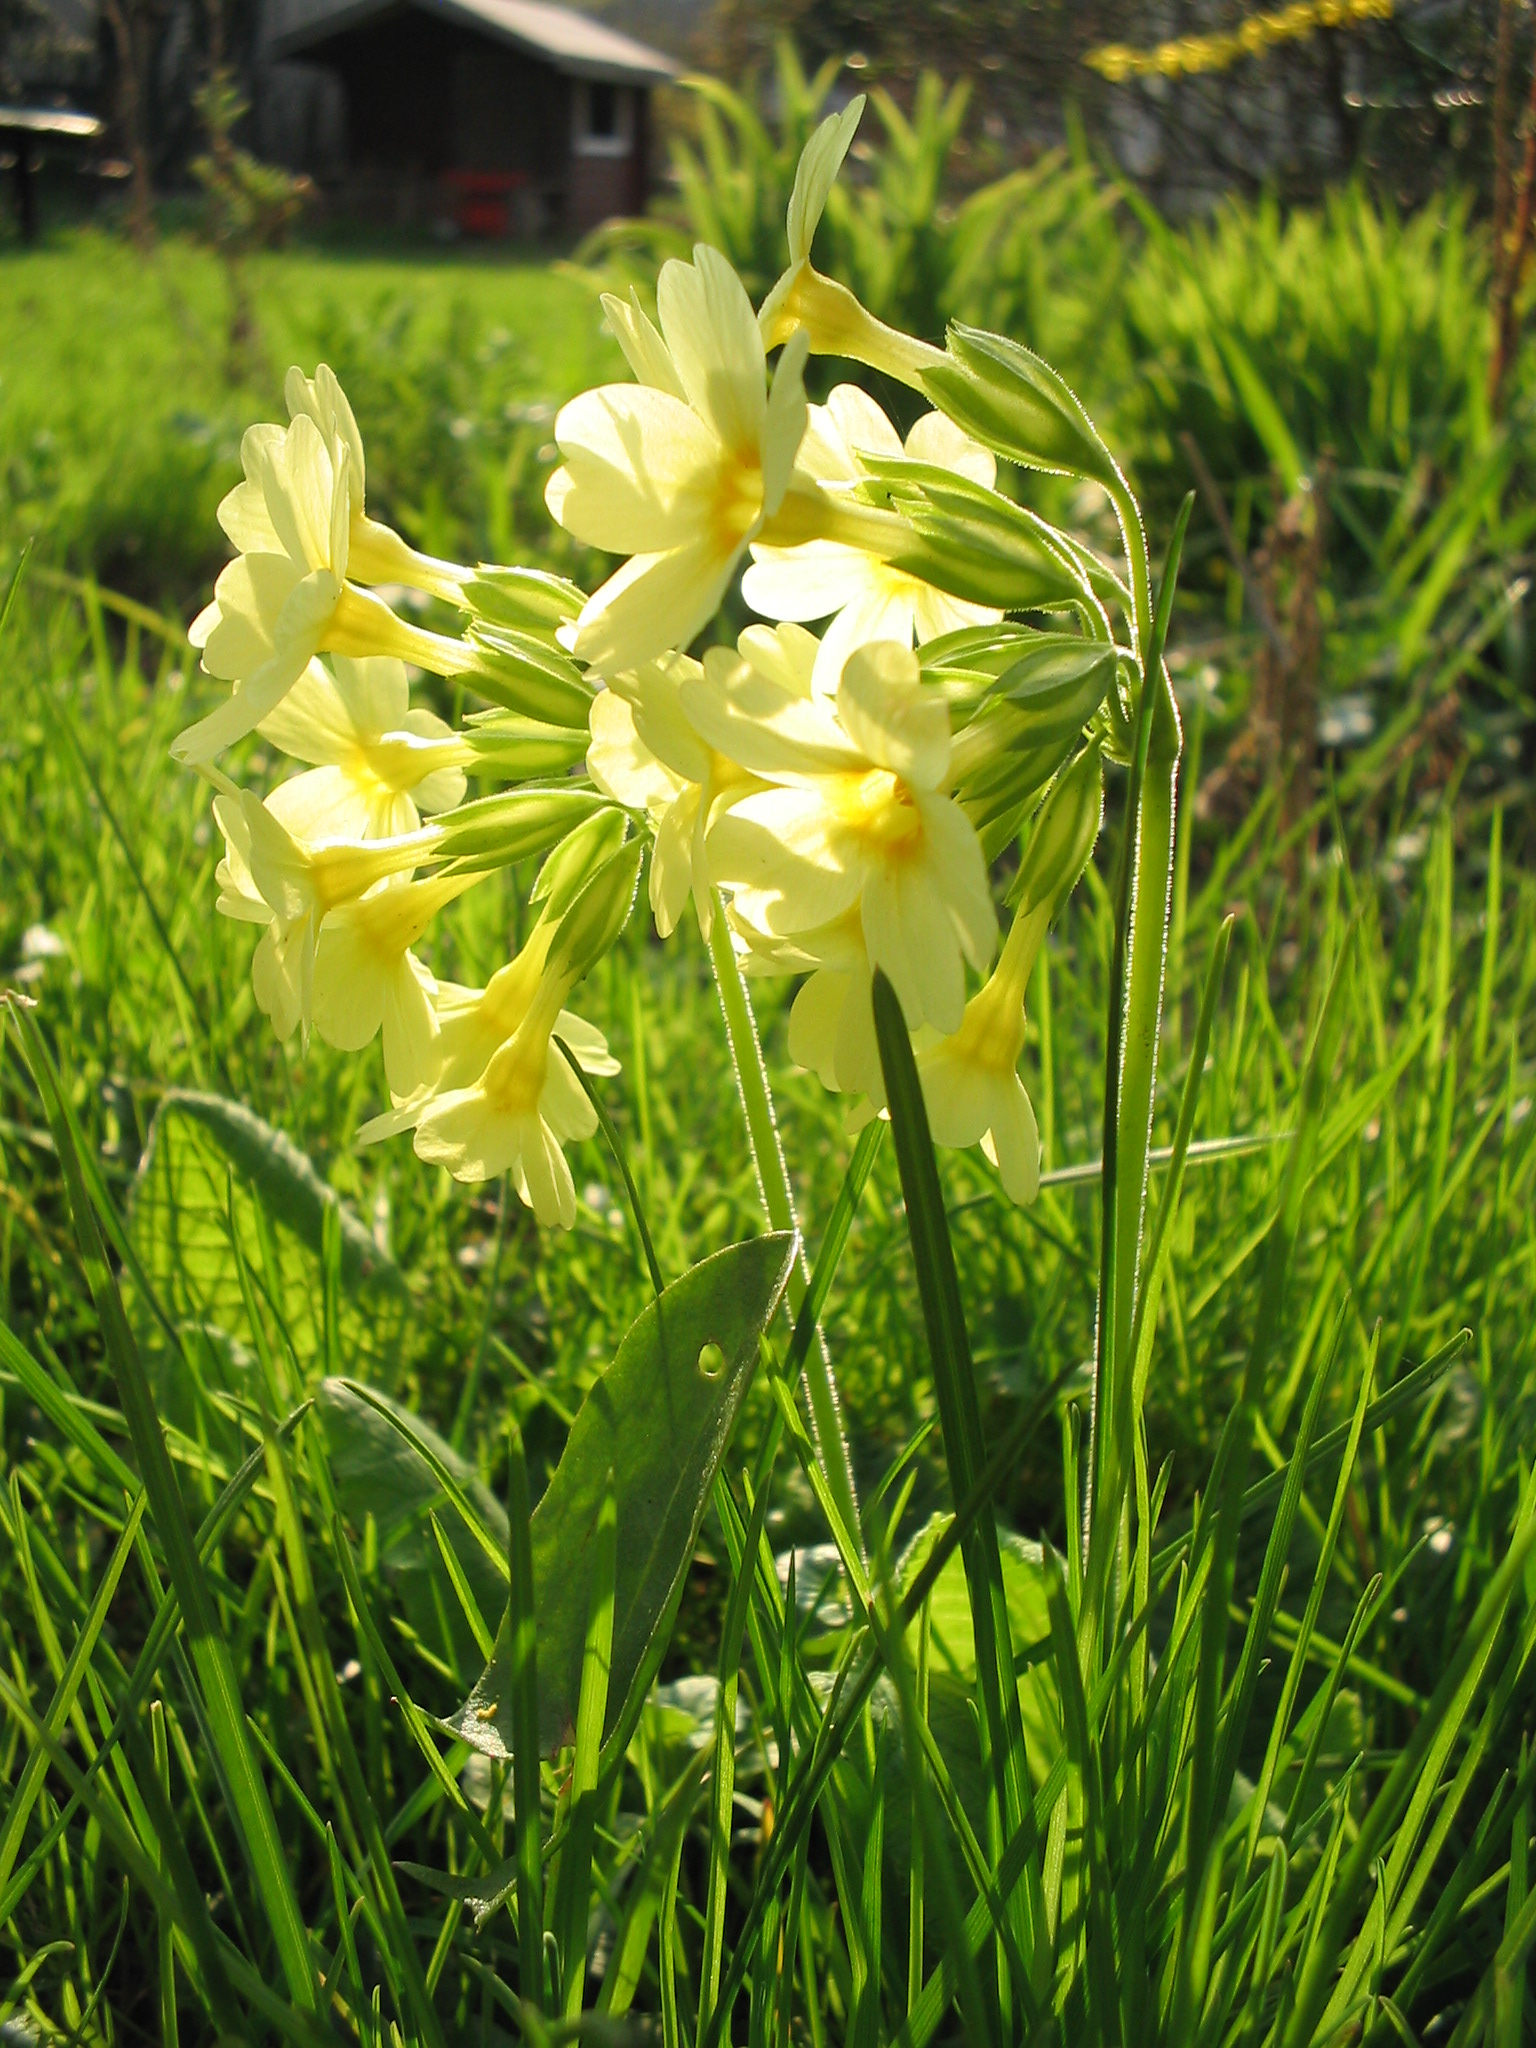 Garden flowers names - This Pretty Yellow Flower Gathered Since The Middle Ages When Bringing In The May Was Known In Middle English By Various Names Including Primerose